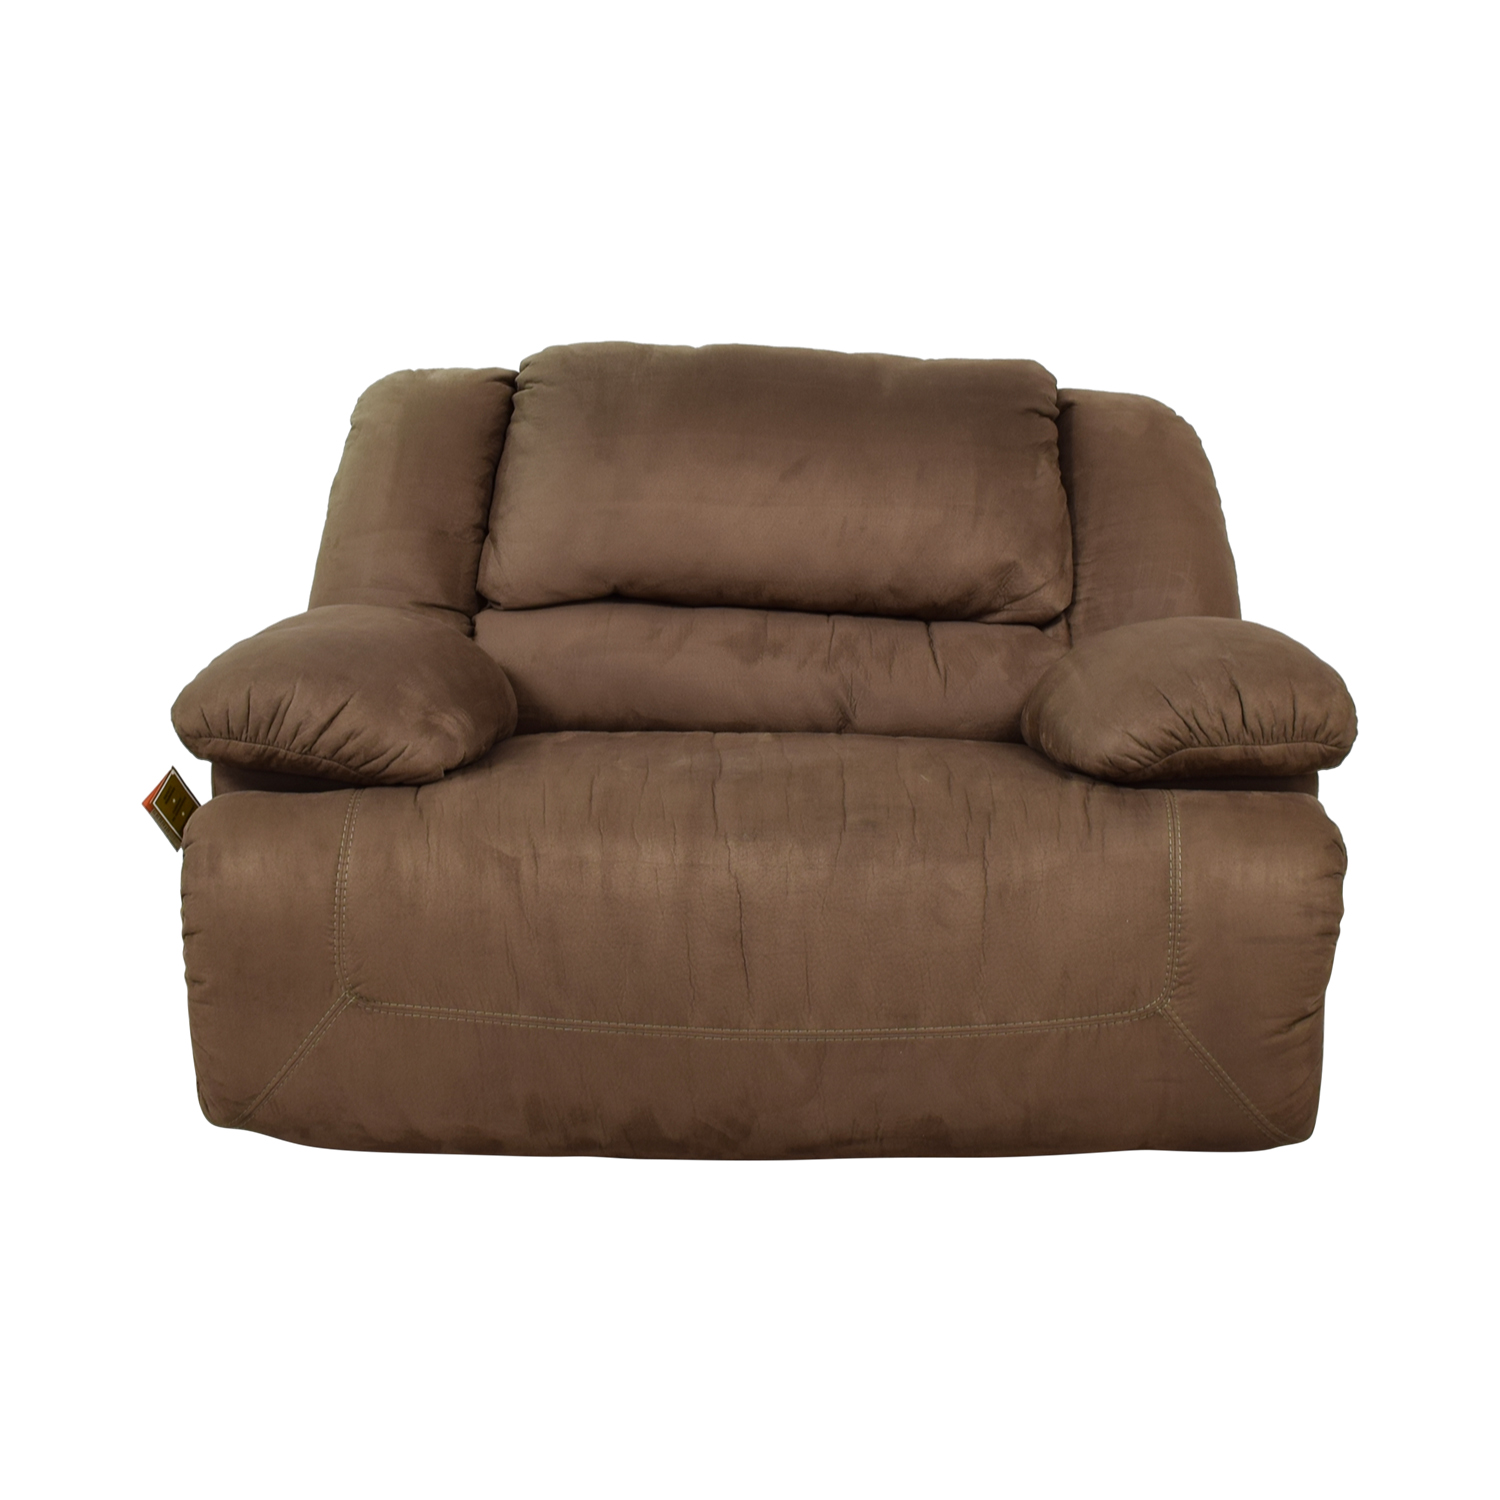 65 Off Ashley Furniture Ashley Furniture Signature Design Brown